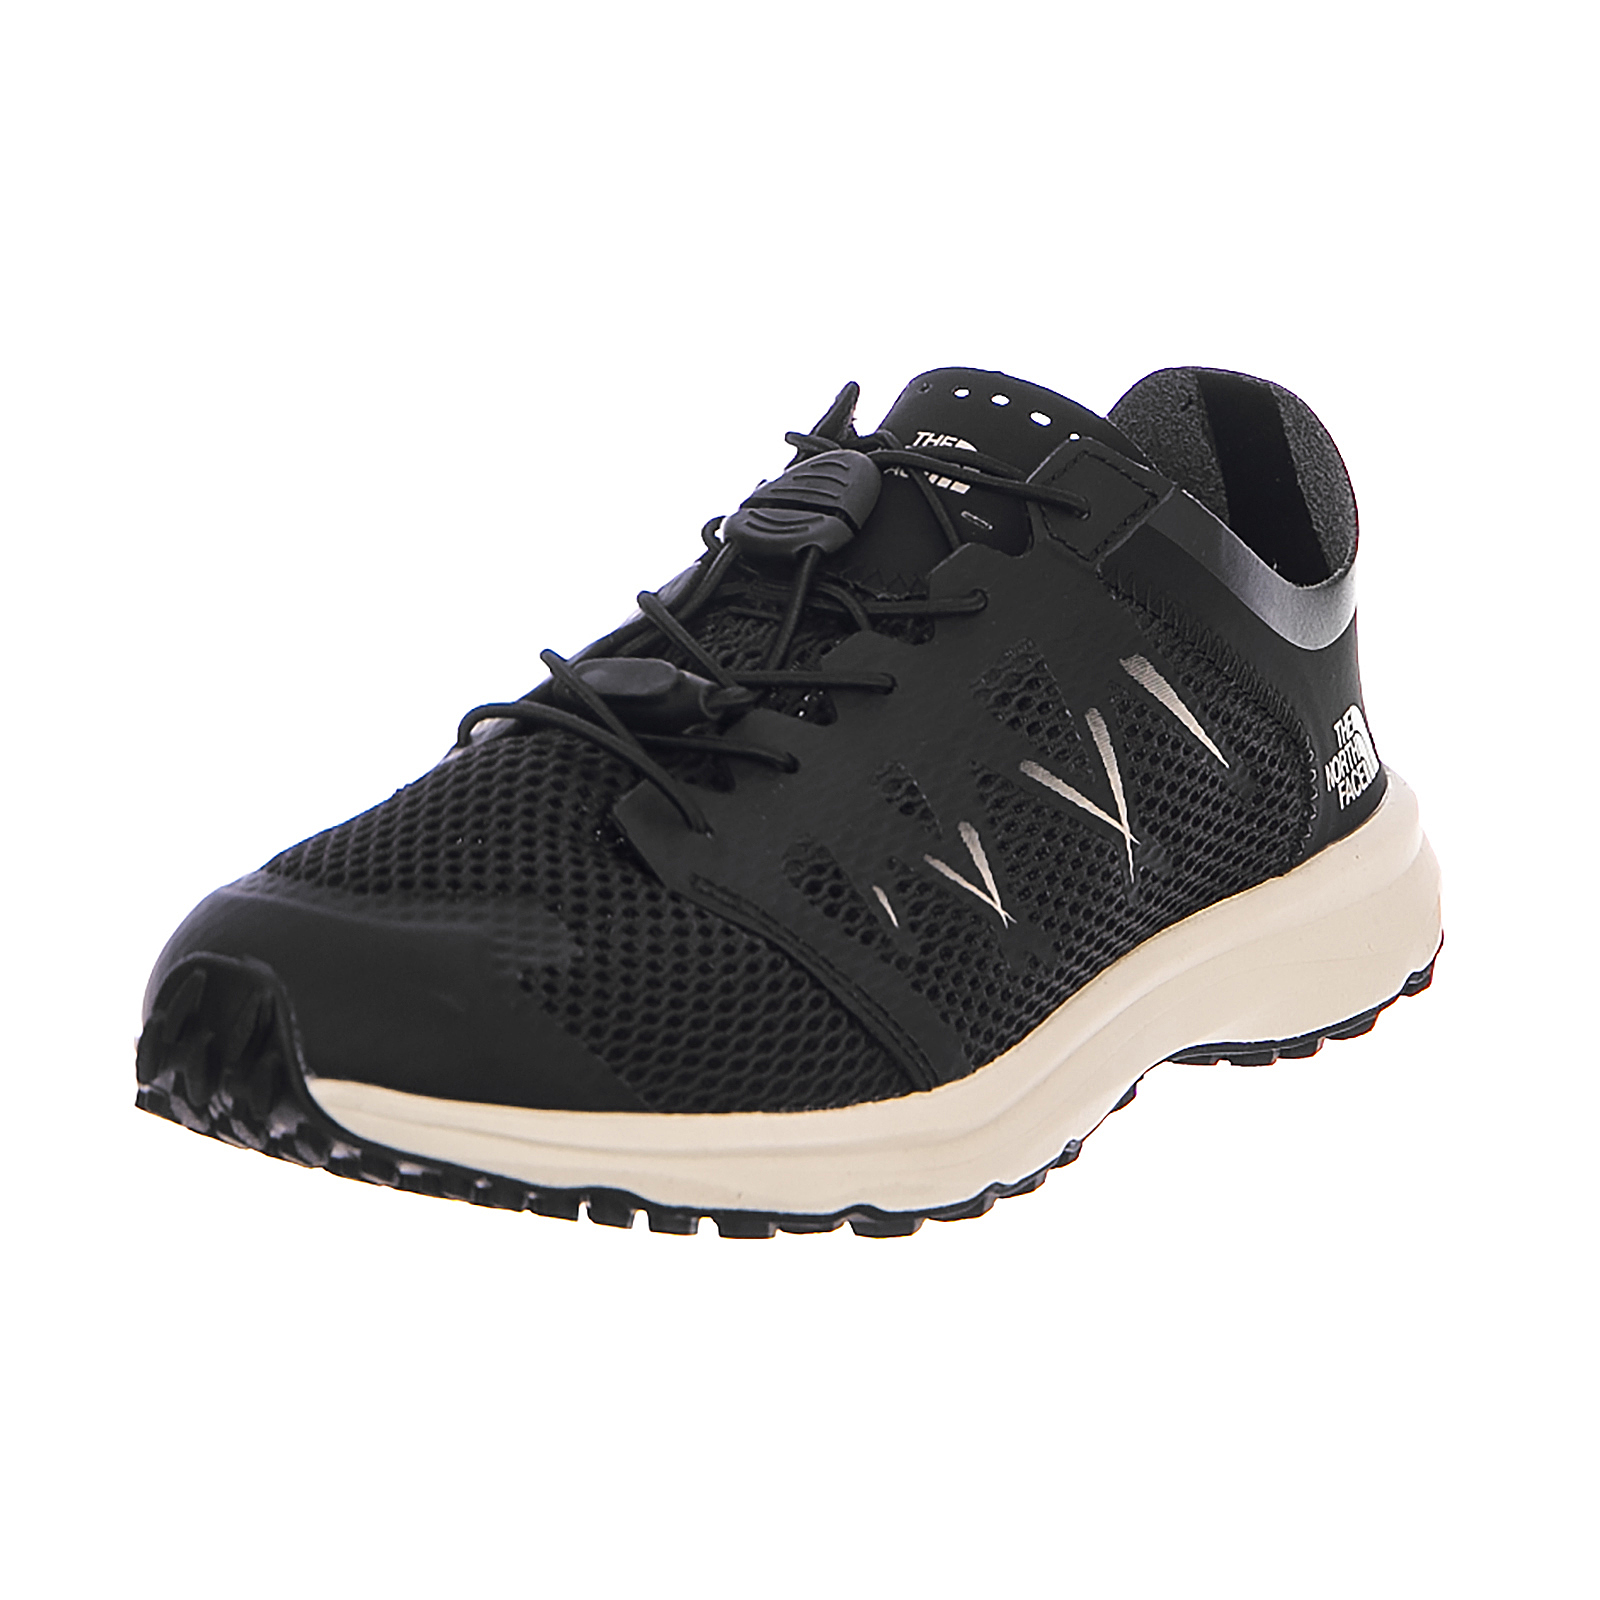 The North Face Scarpe da Ginnastica W Litewave Flow Lace Tnfblk/Vntagwht Nero